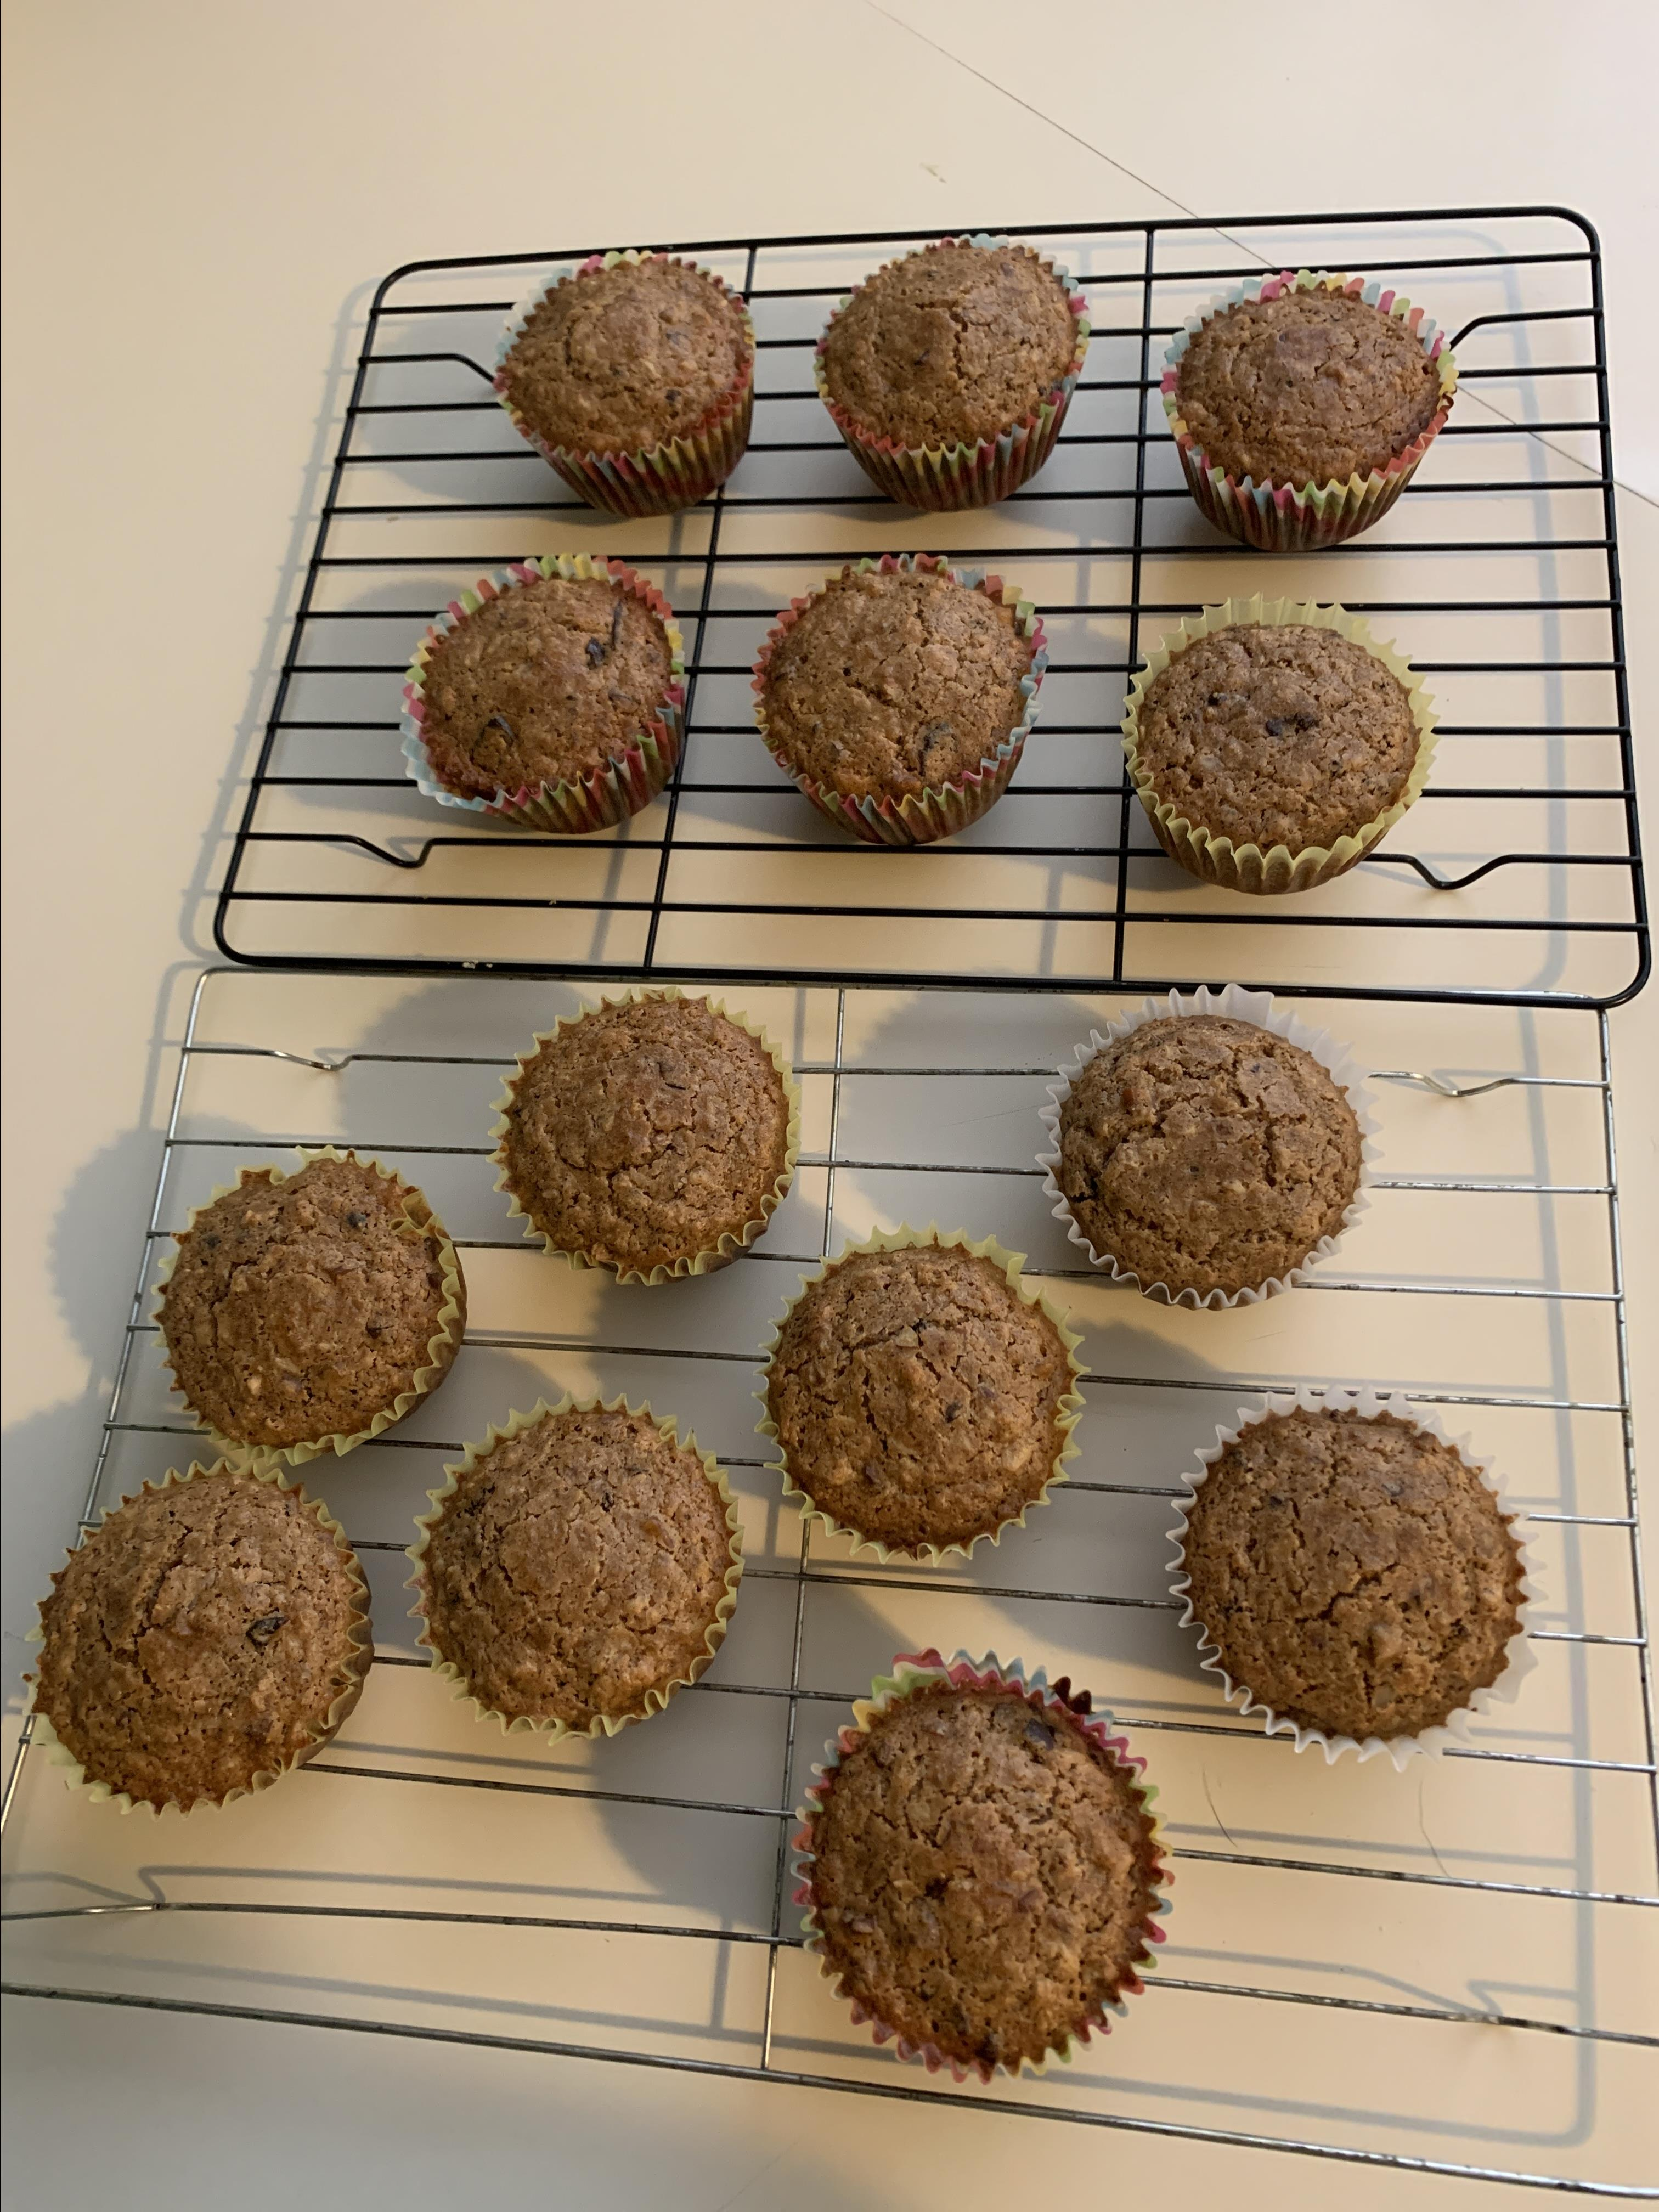 Brown Butter Oatmeal Muffins tinagreening